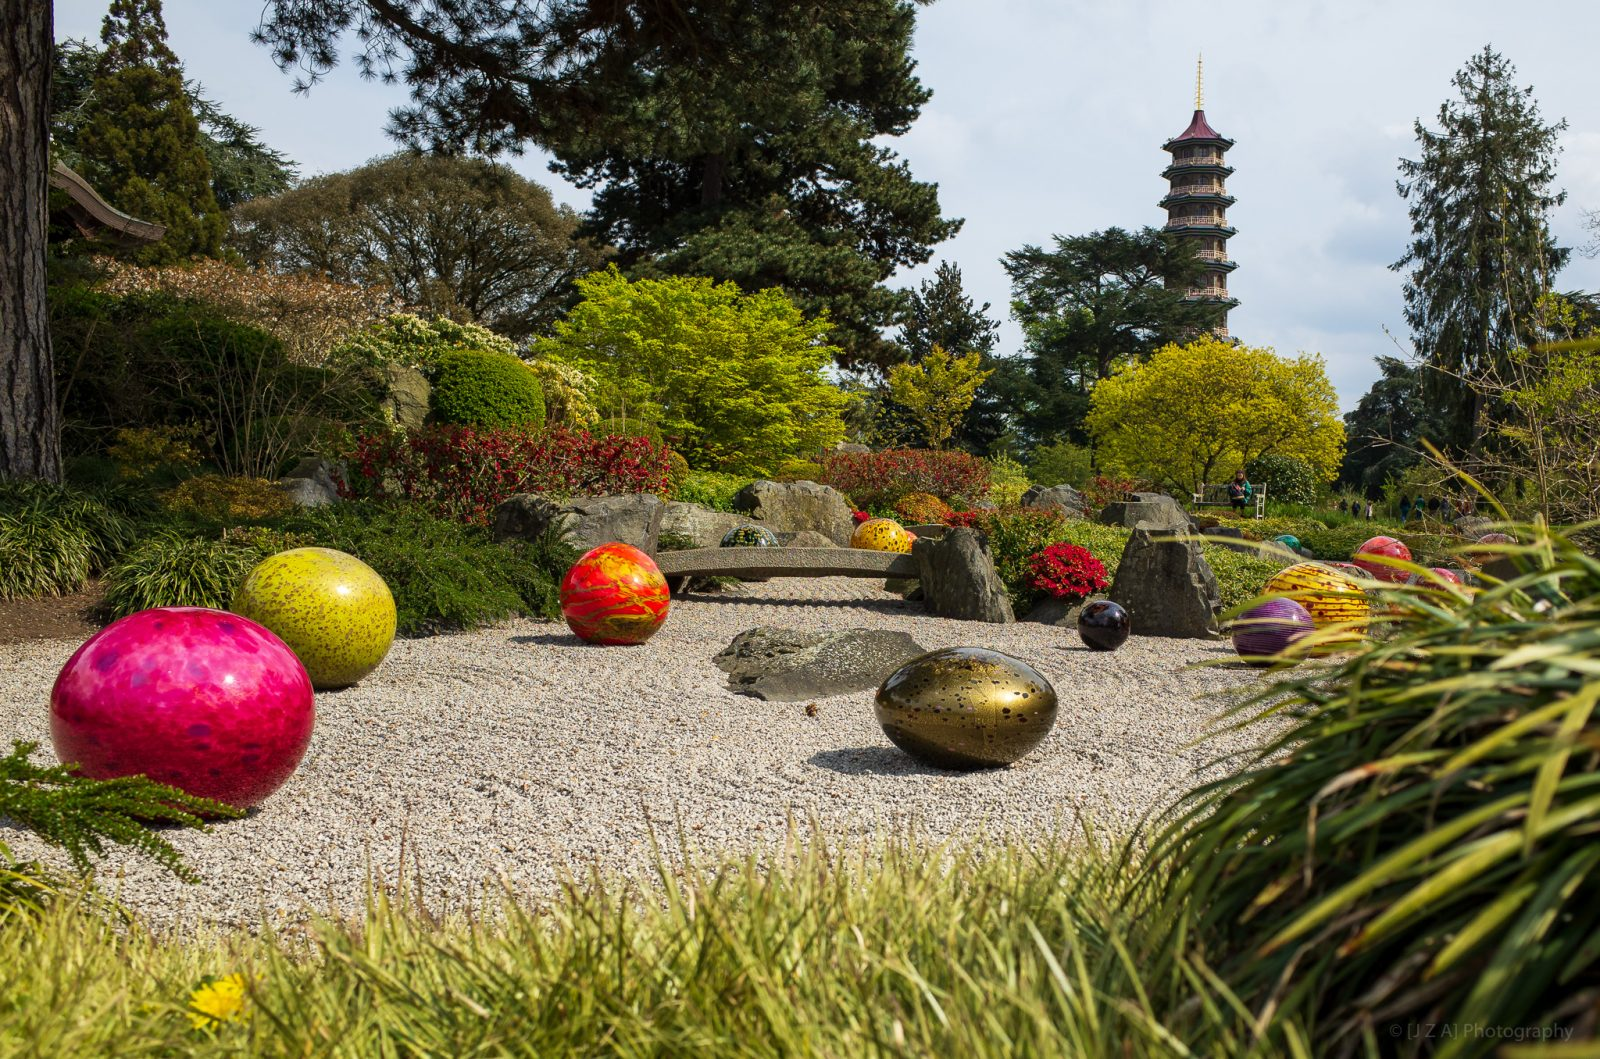 Kew Gardens:  Reflections on nature